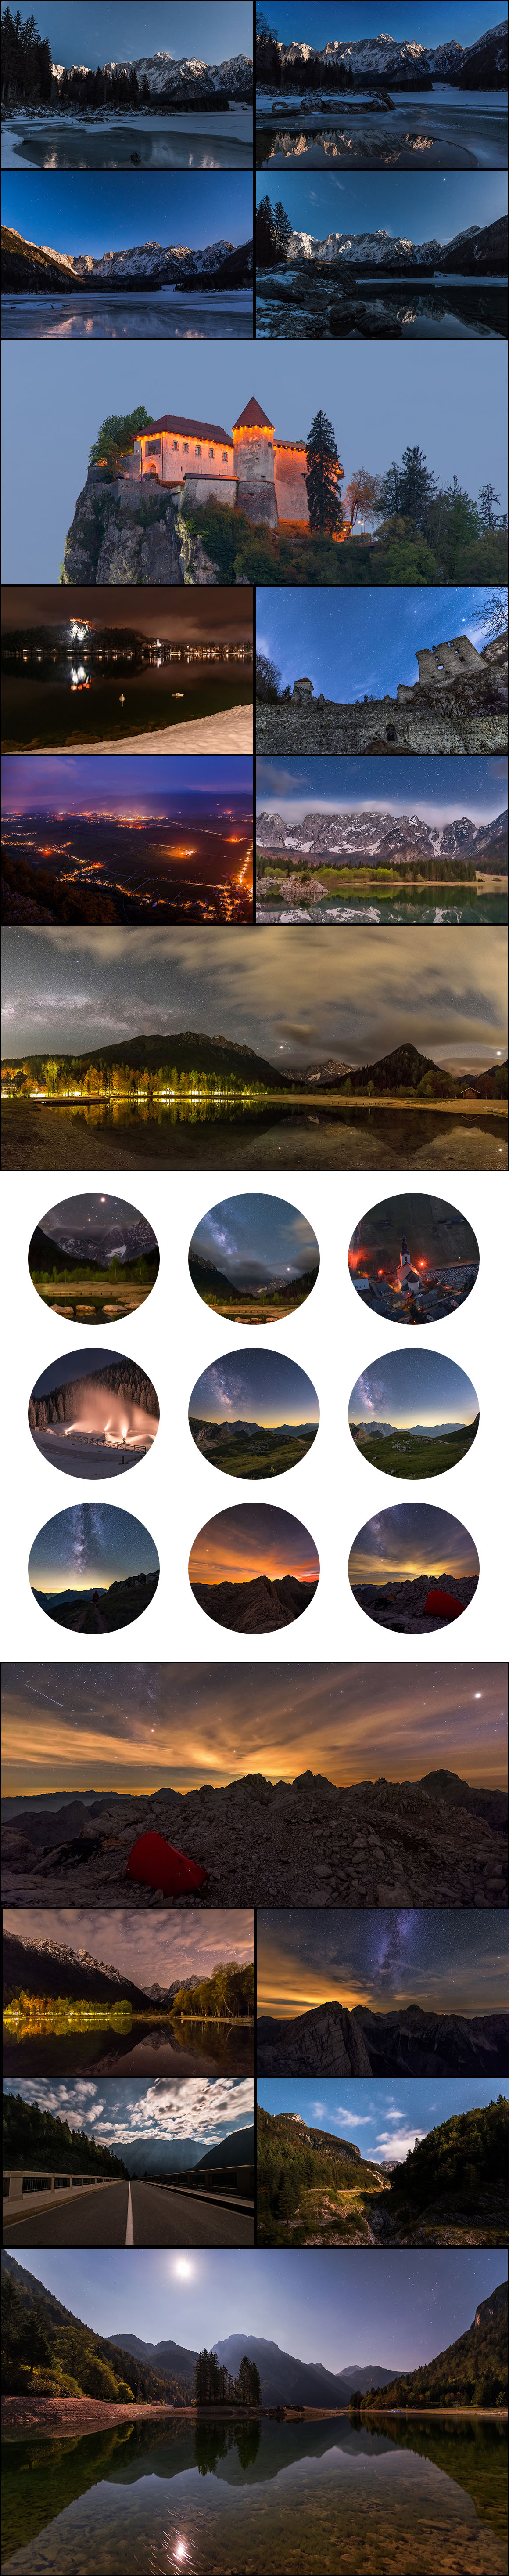 Ultimate Photo Bundle 2016 from DreamyPixel – 700+ Images example image 23